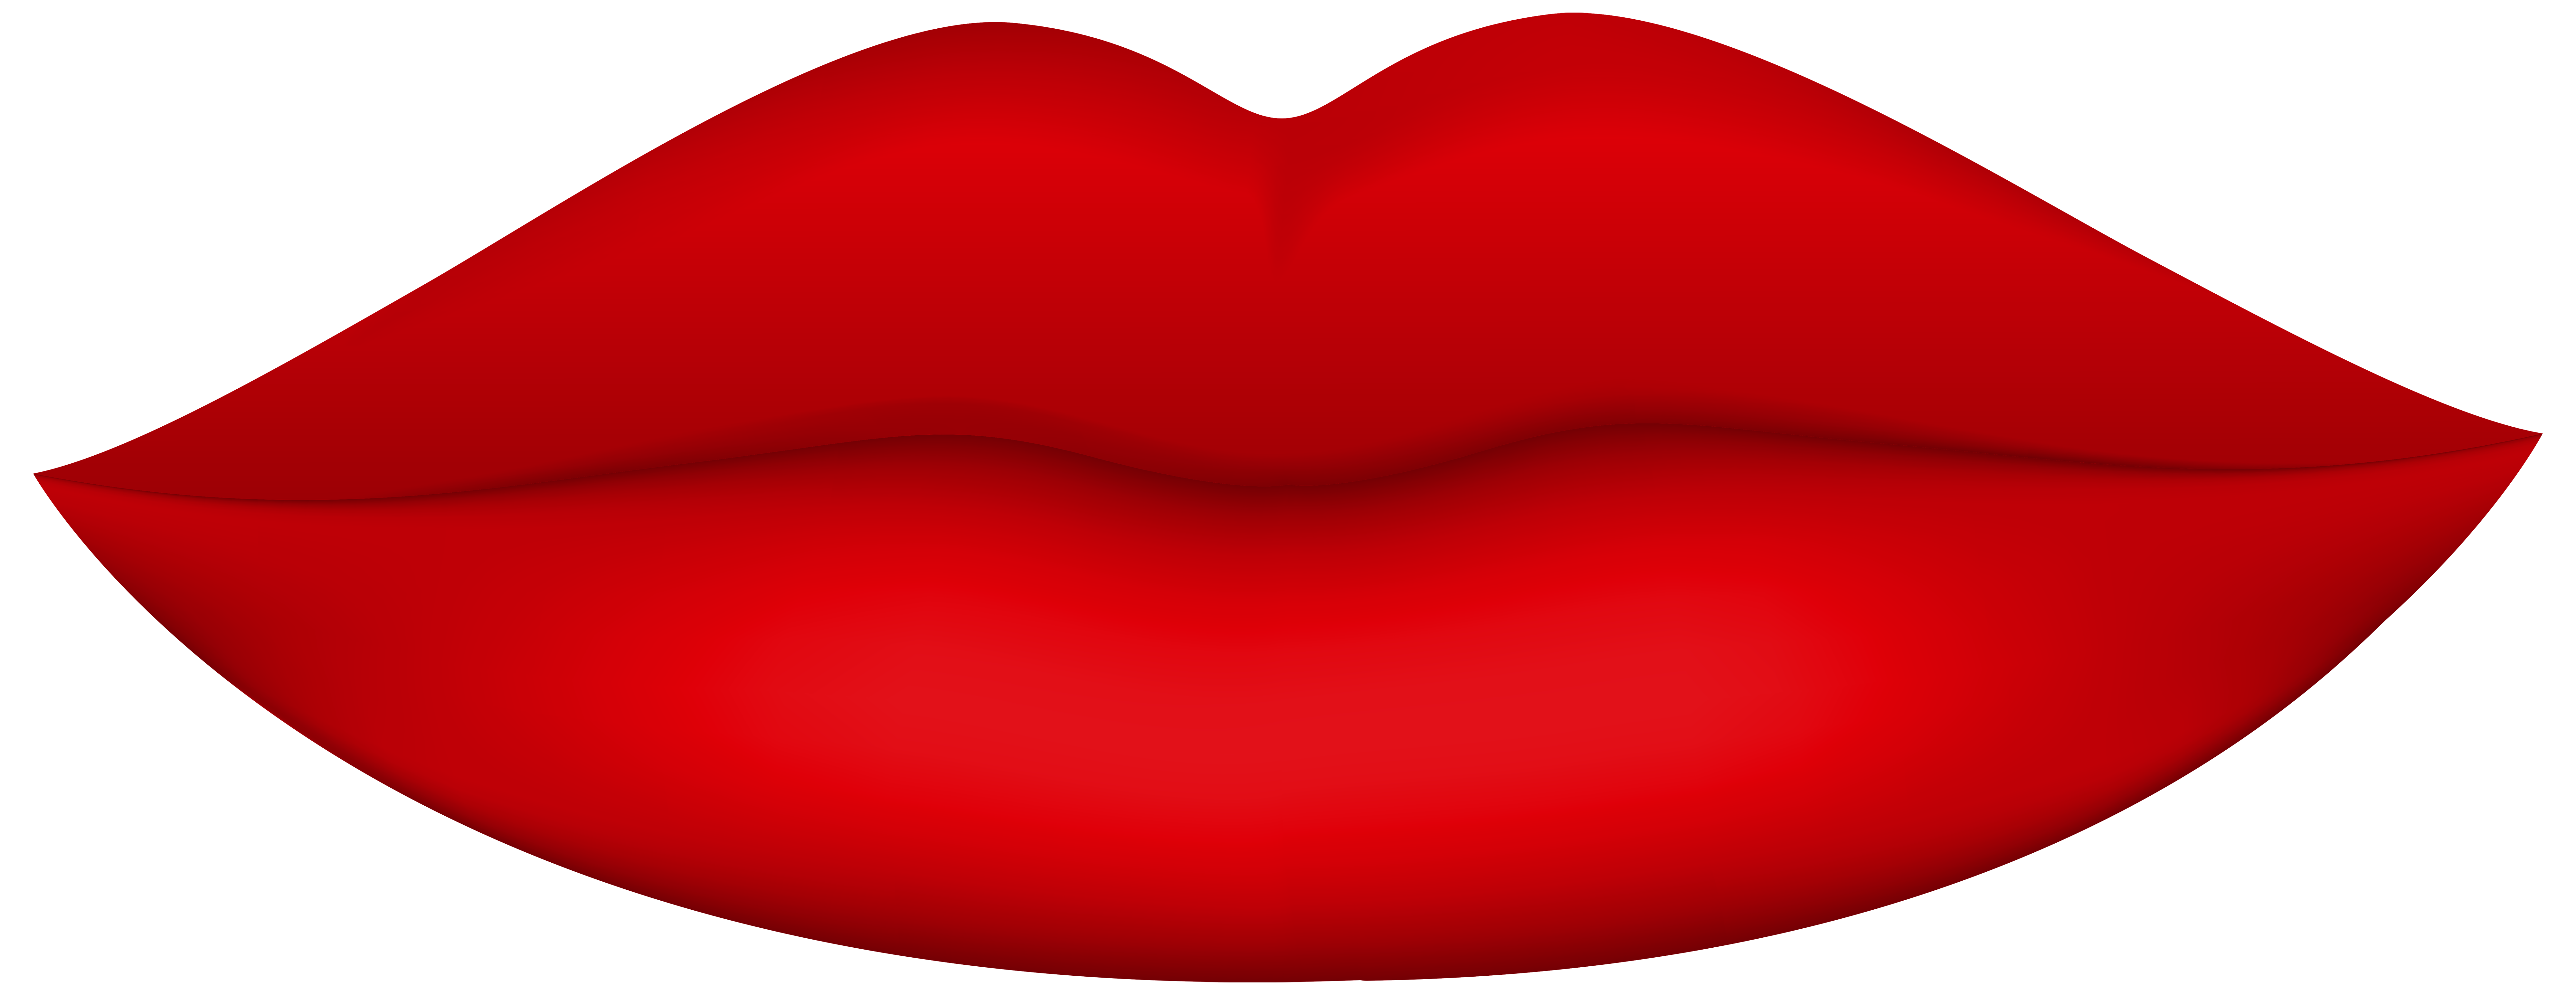 Red lips png clip. Lip clipart clip art library